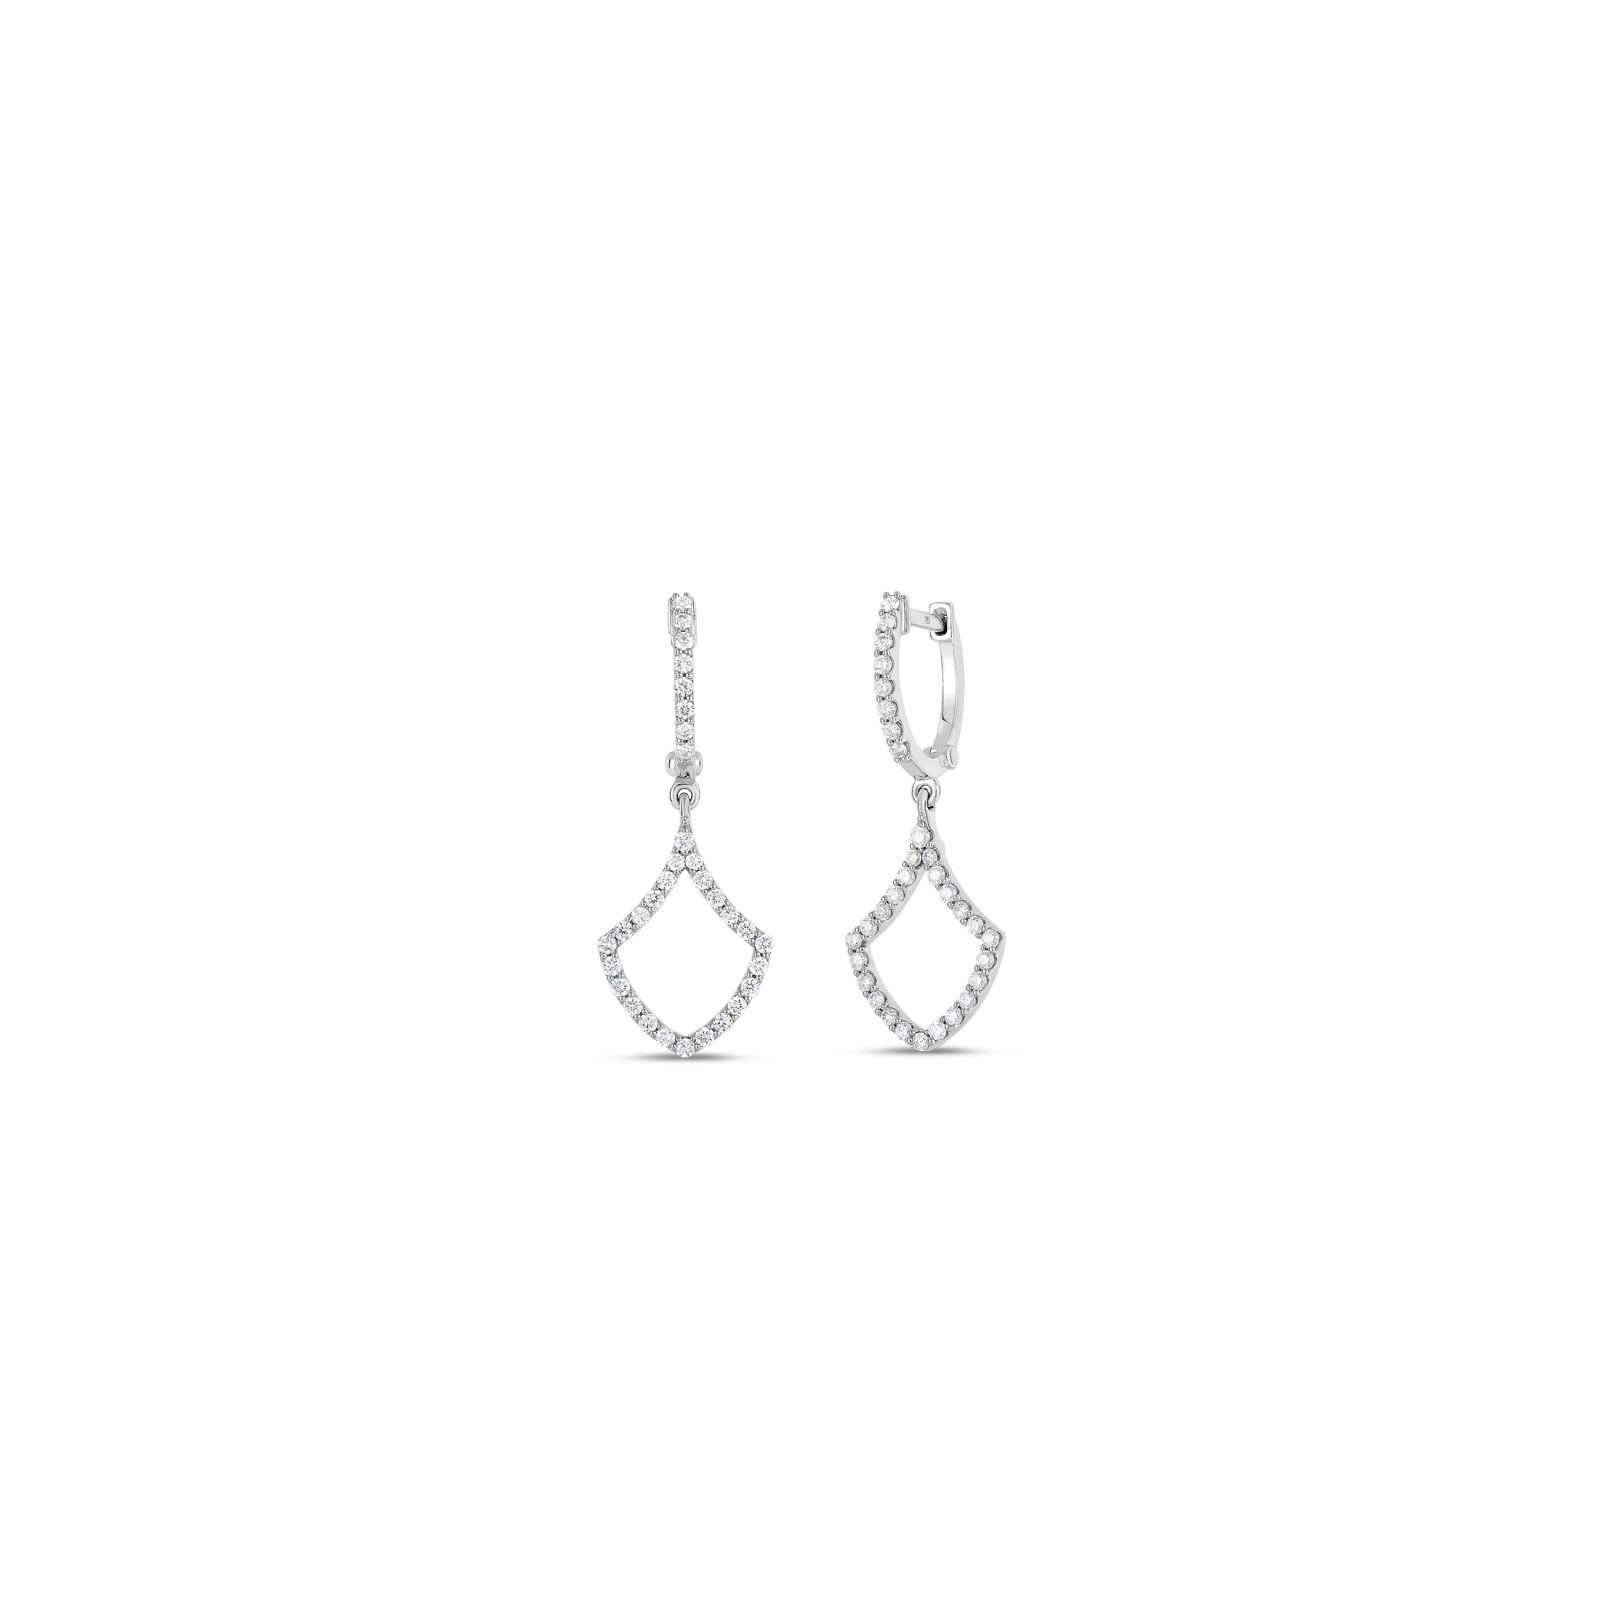 Roberto Coin Tiny Treasures 18k White Gold Drop Earrings With Diamonds